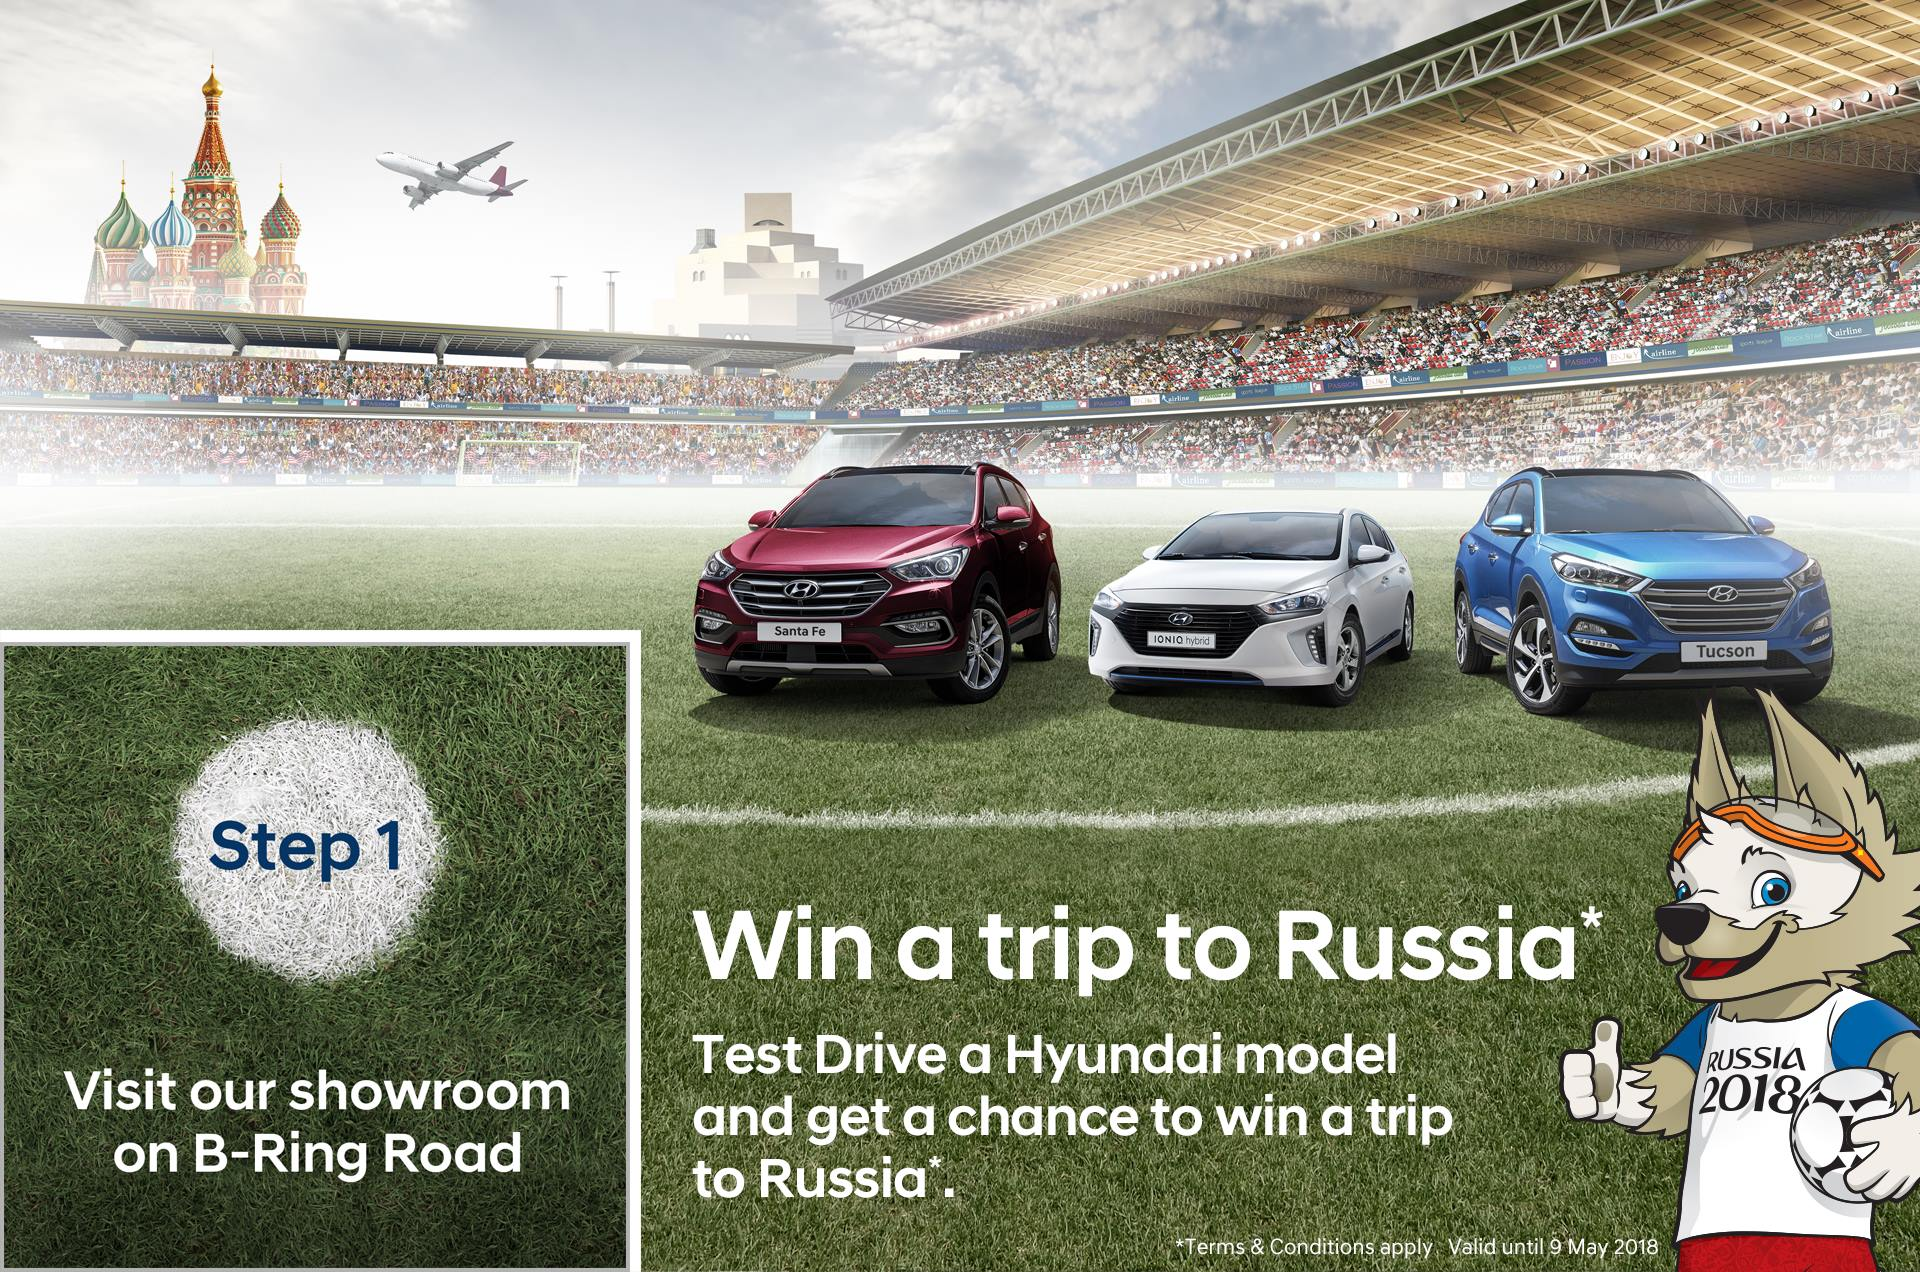 Win a trip to World Cup in Russia with Hyundai